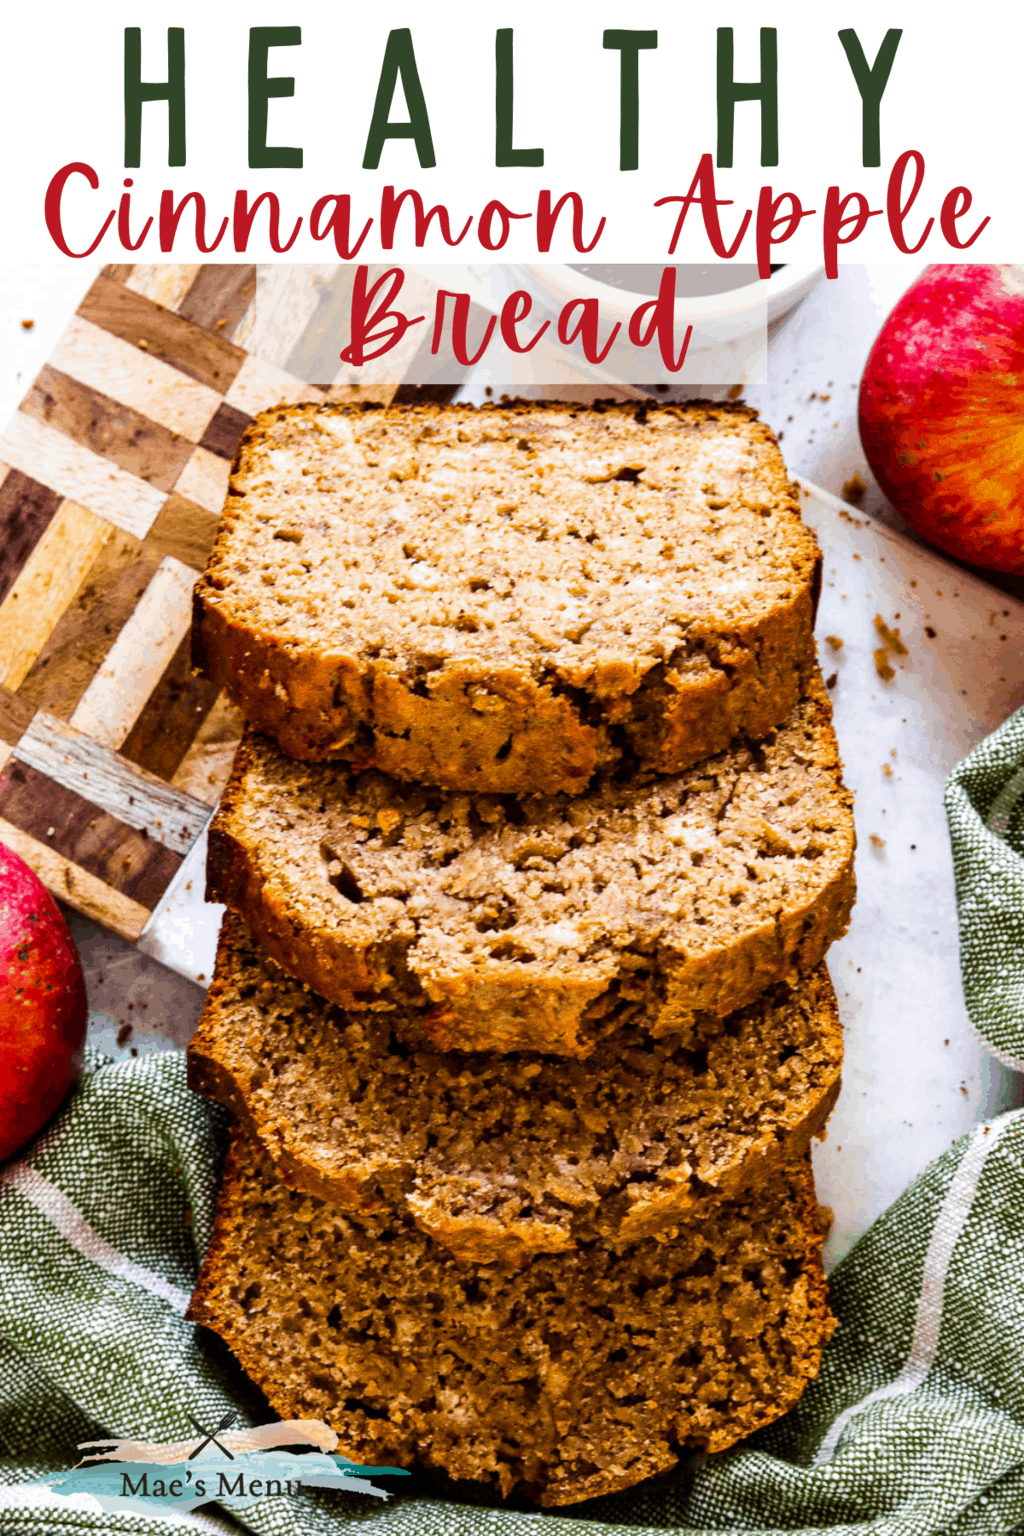 A pinterest pin for healthy apple bread with an overhead shot of the sliced bread on a cutting board